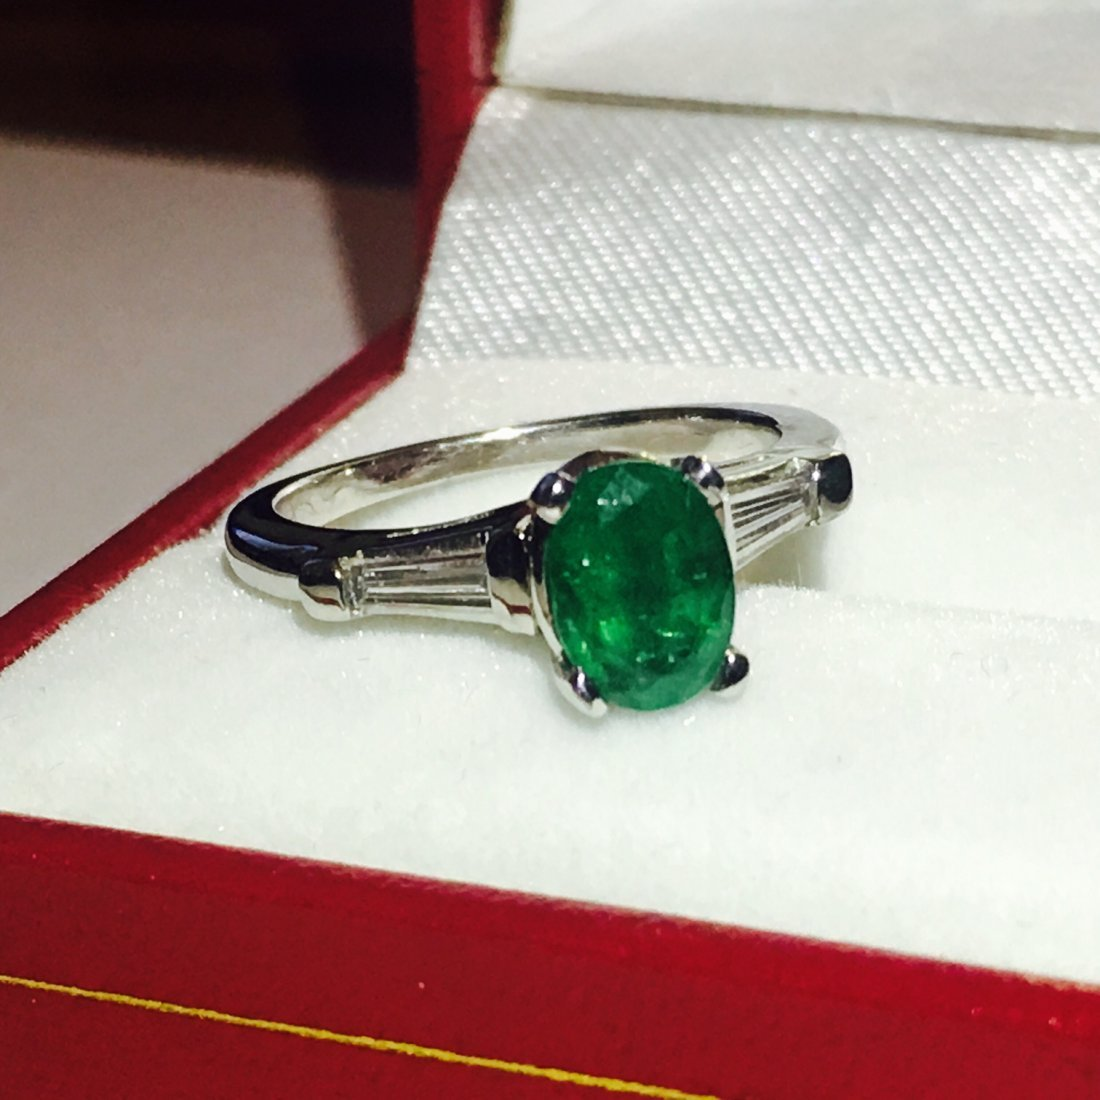 18K, 1.50 Carat Emerald and VVS Diamond Ring